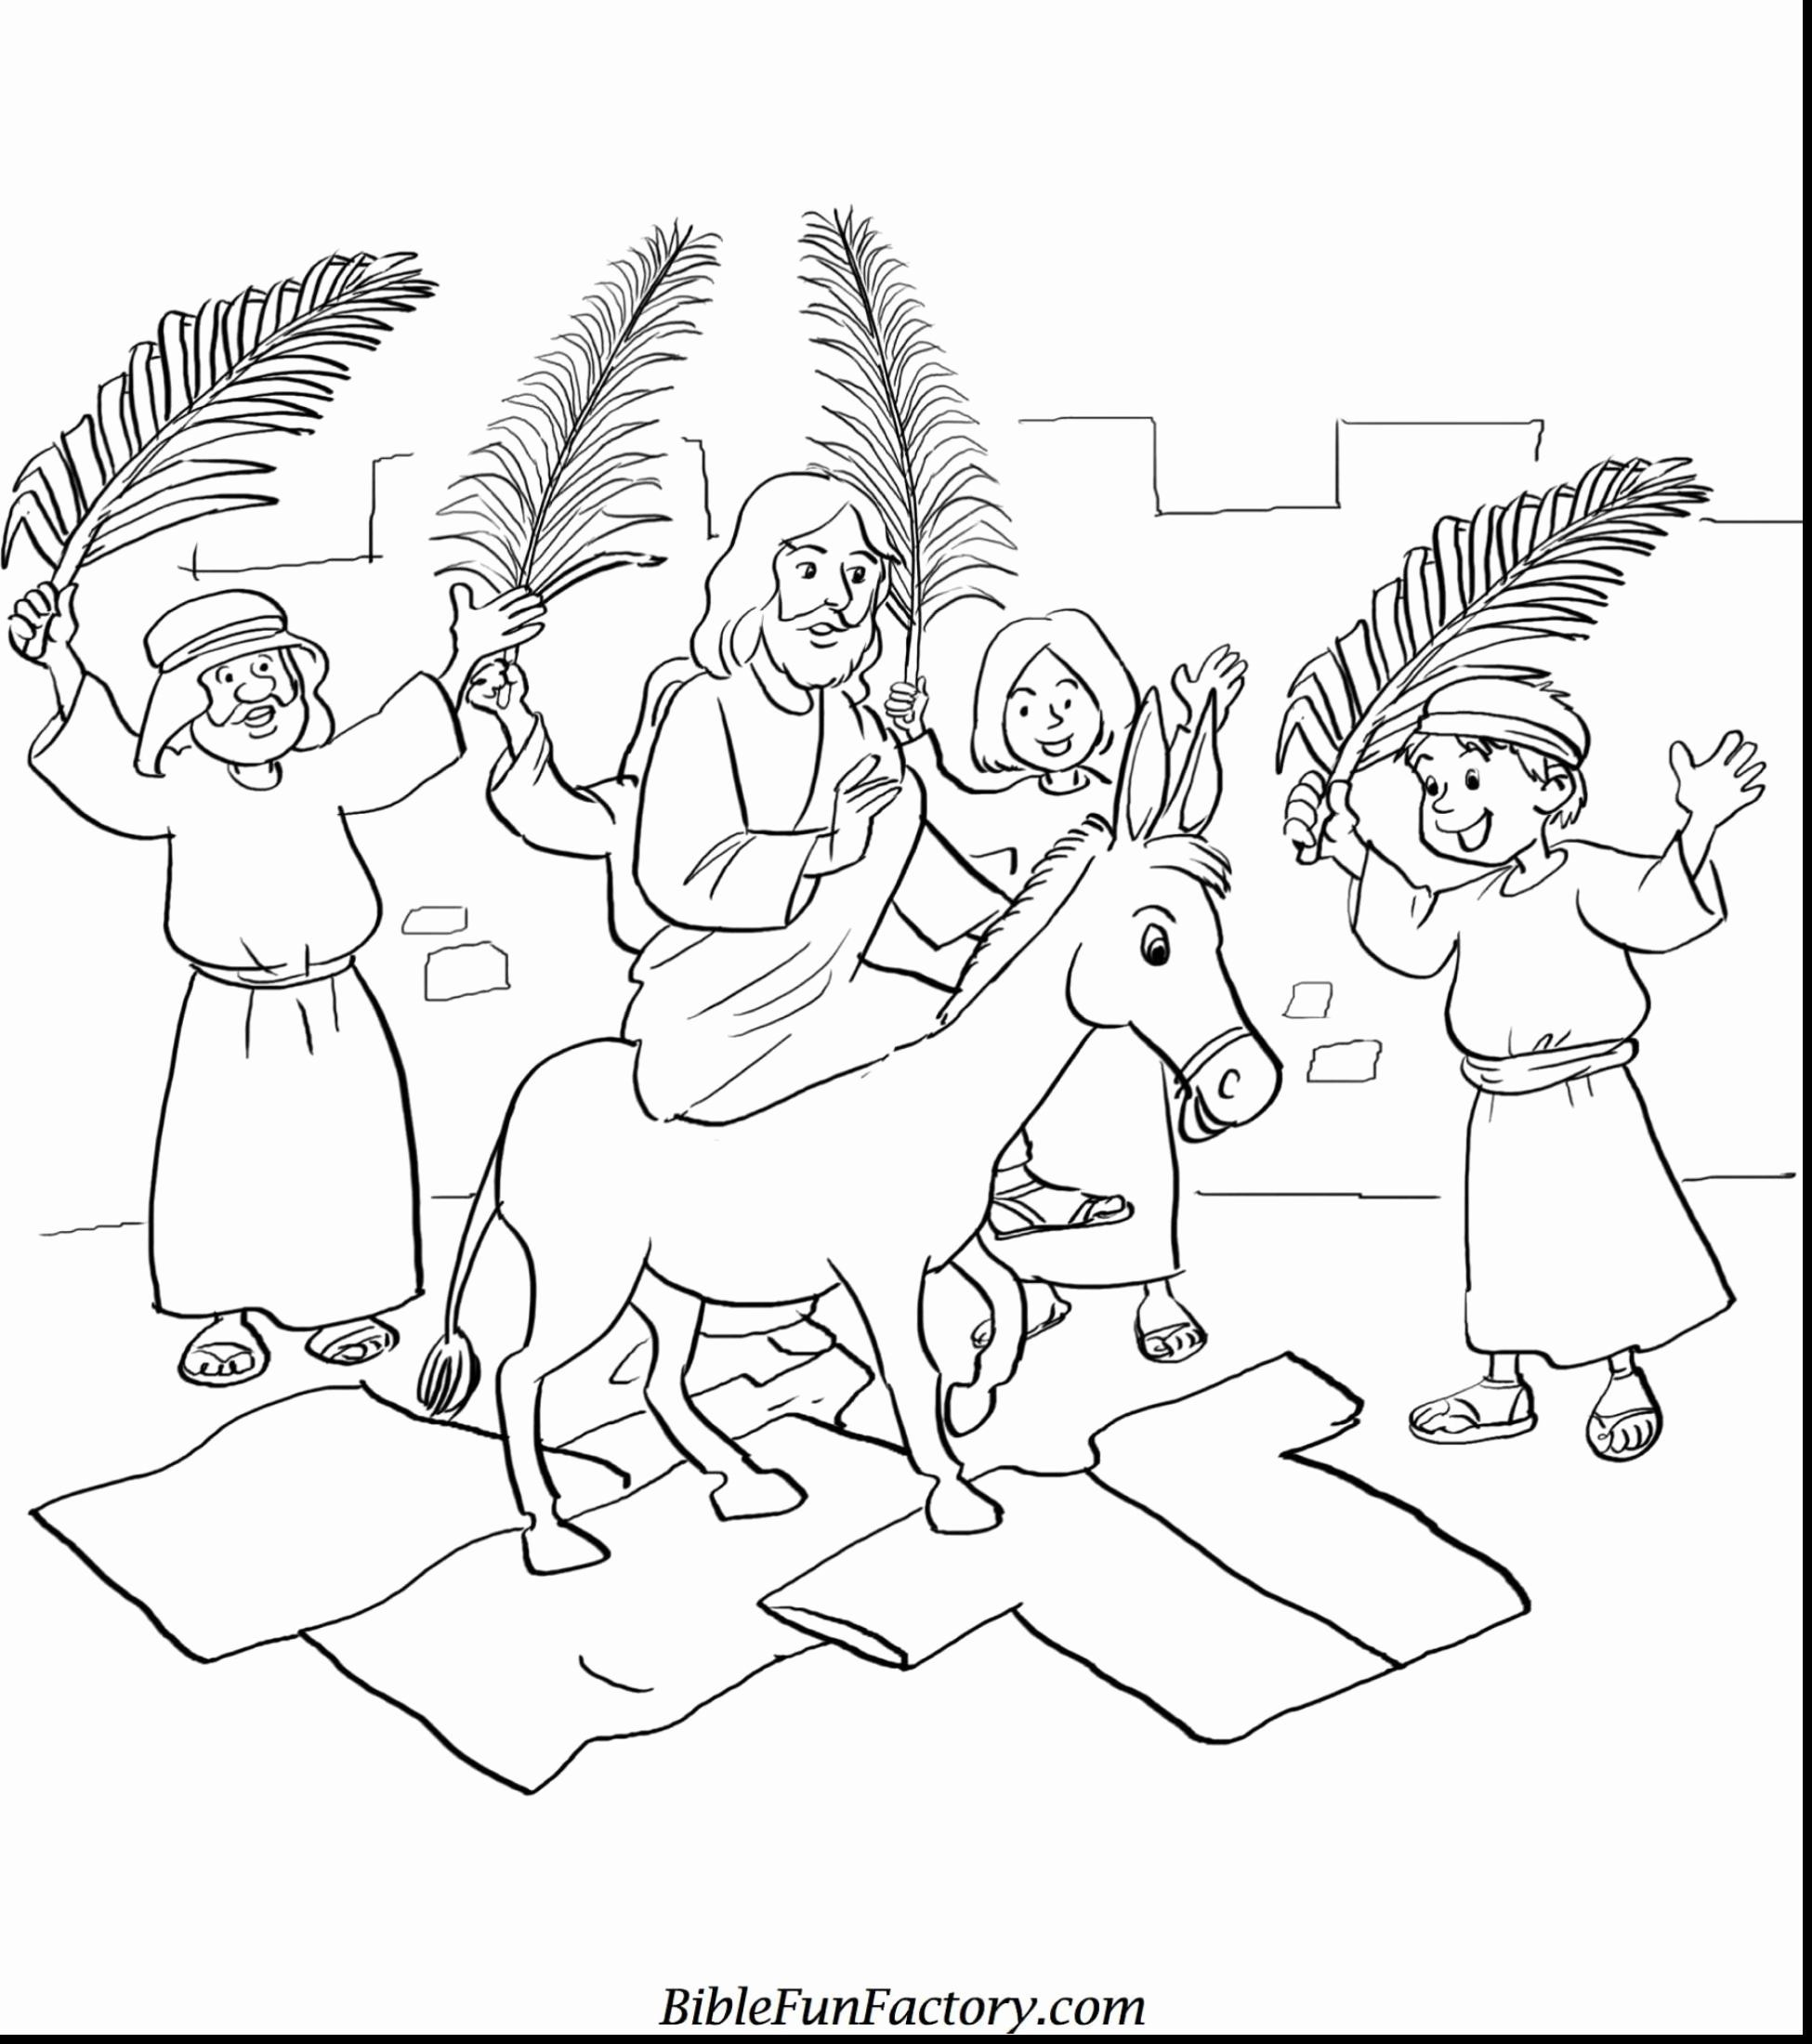 Easter Day Coloring Pages | Meetopia Coloring Pages in ...